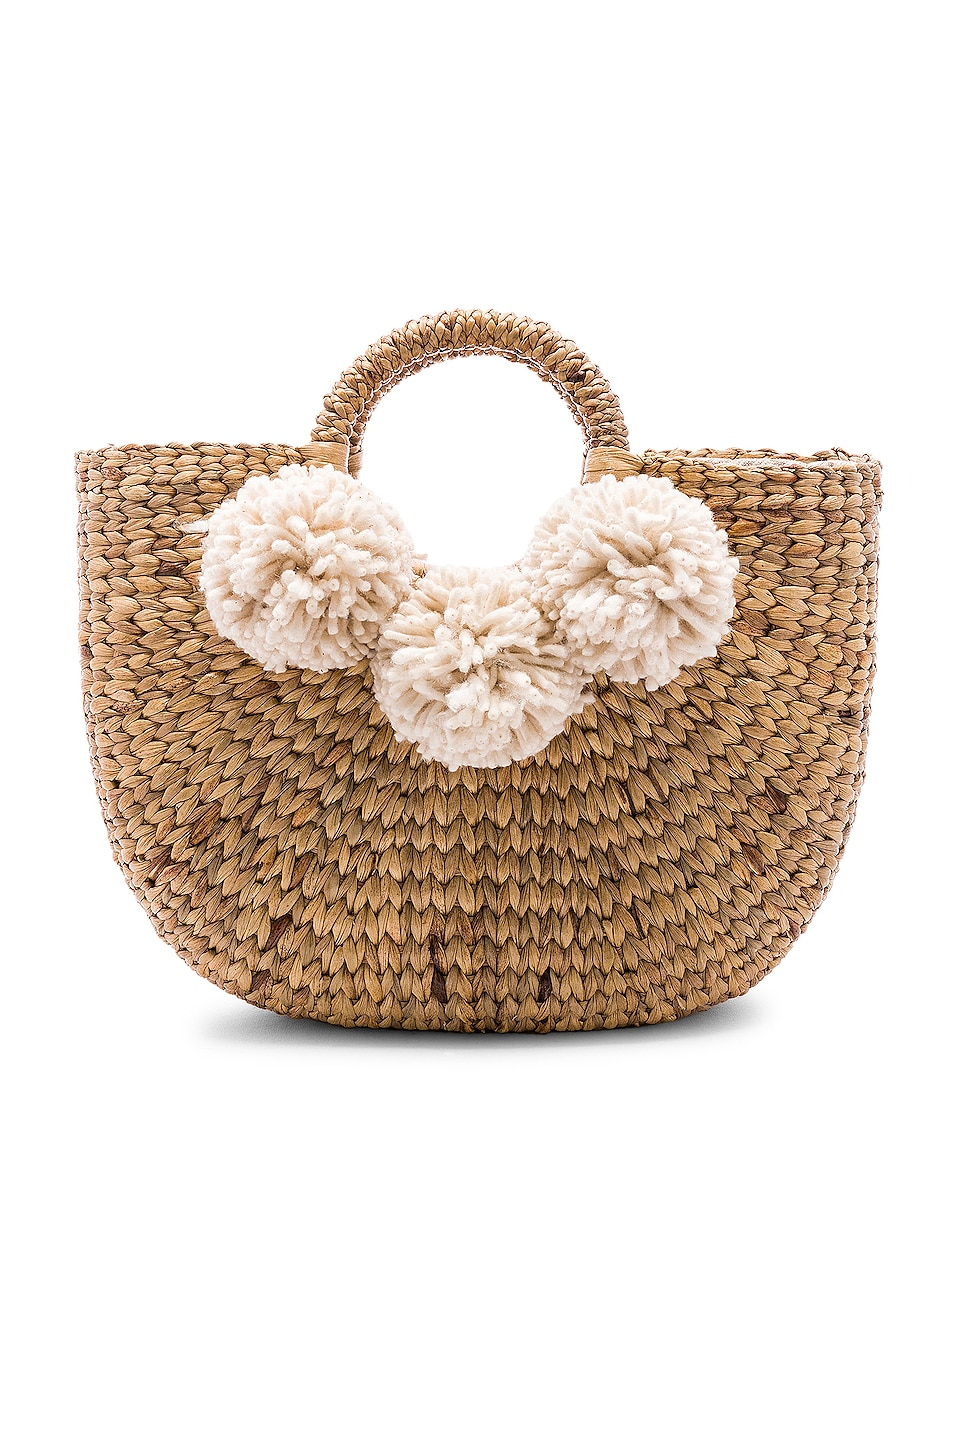 JADEtribe Small Sabai 3 Pom Basket in Sand